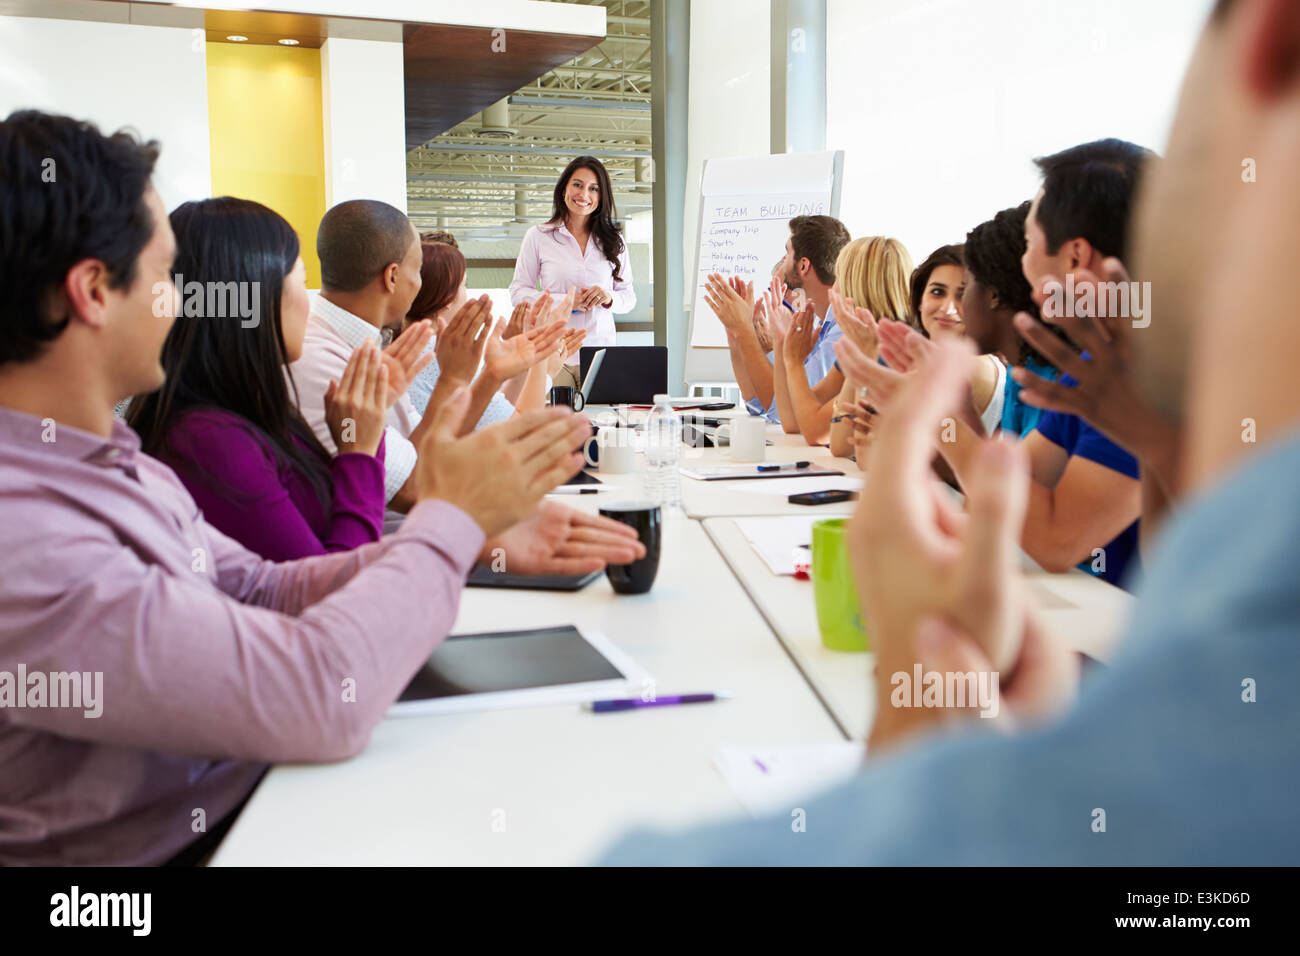 Businesswoman Addressing Meeting Around Boardroom Table - Stock Image